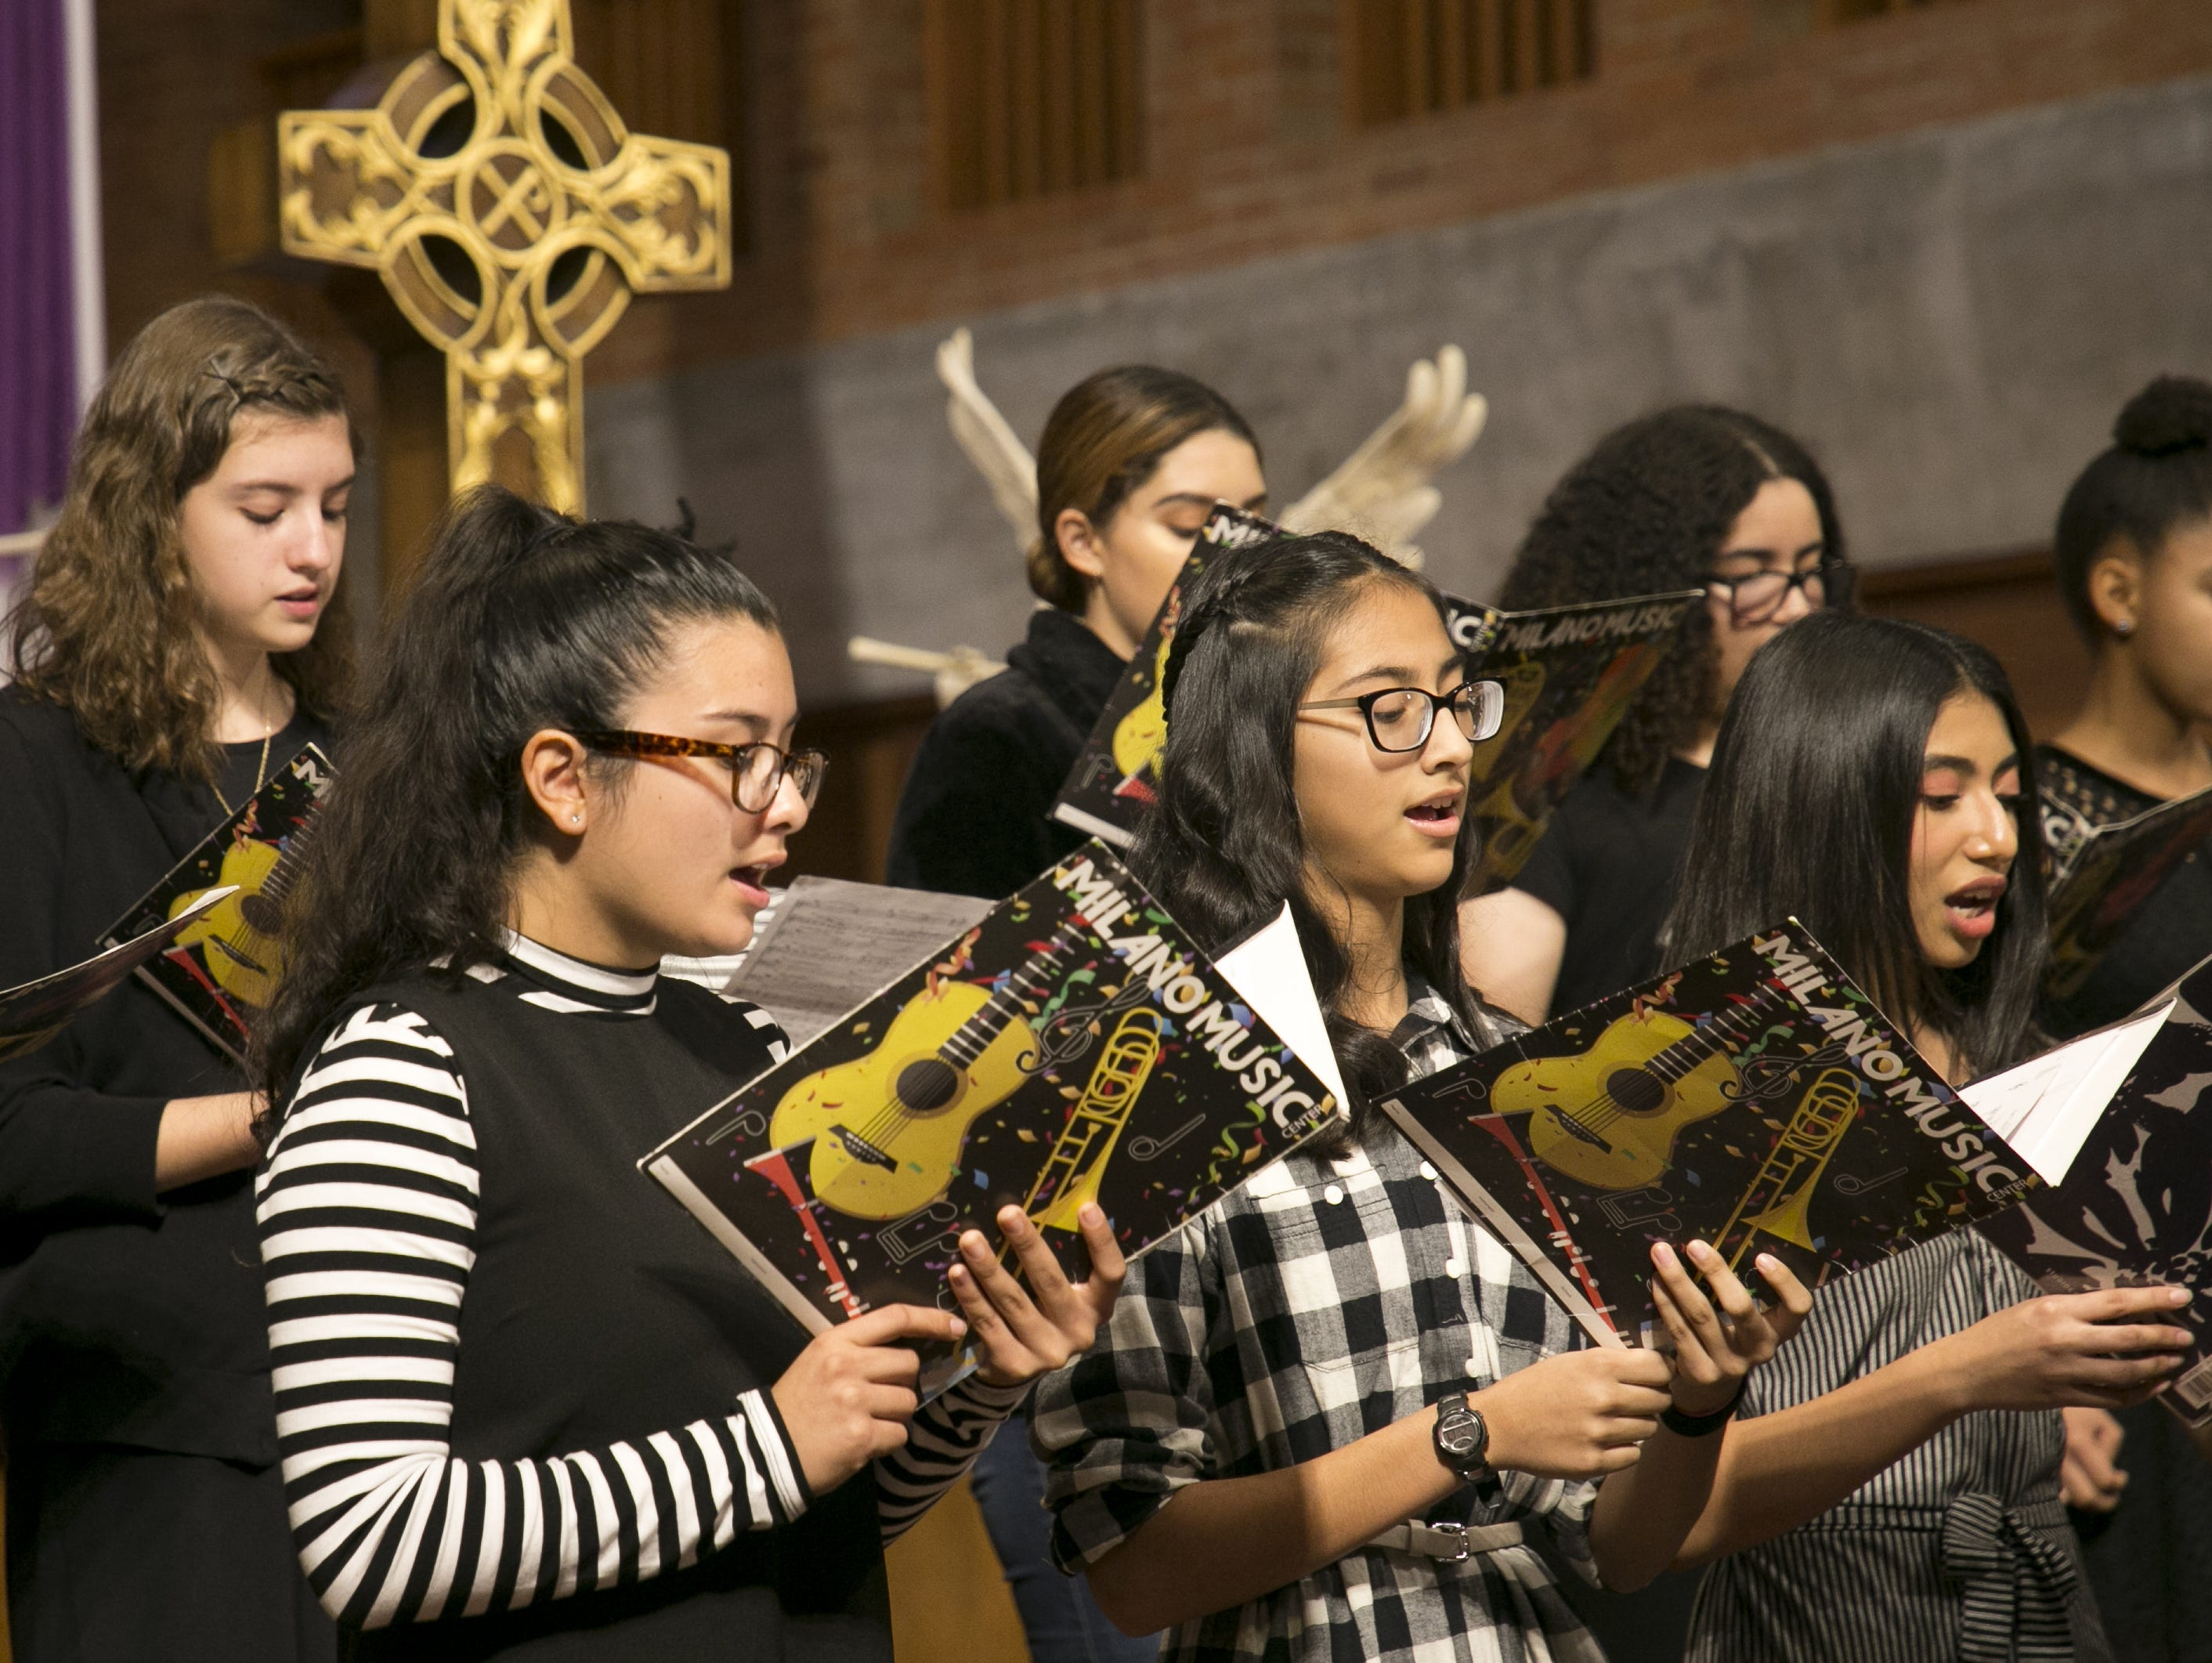 Choir students perform at Rosie's House music academy on Dec. 15, 2018. Rosie's House offers free, 100 percent-charity-funded programs for at-risk youth.